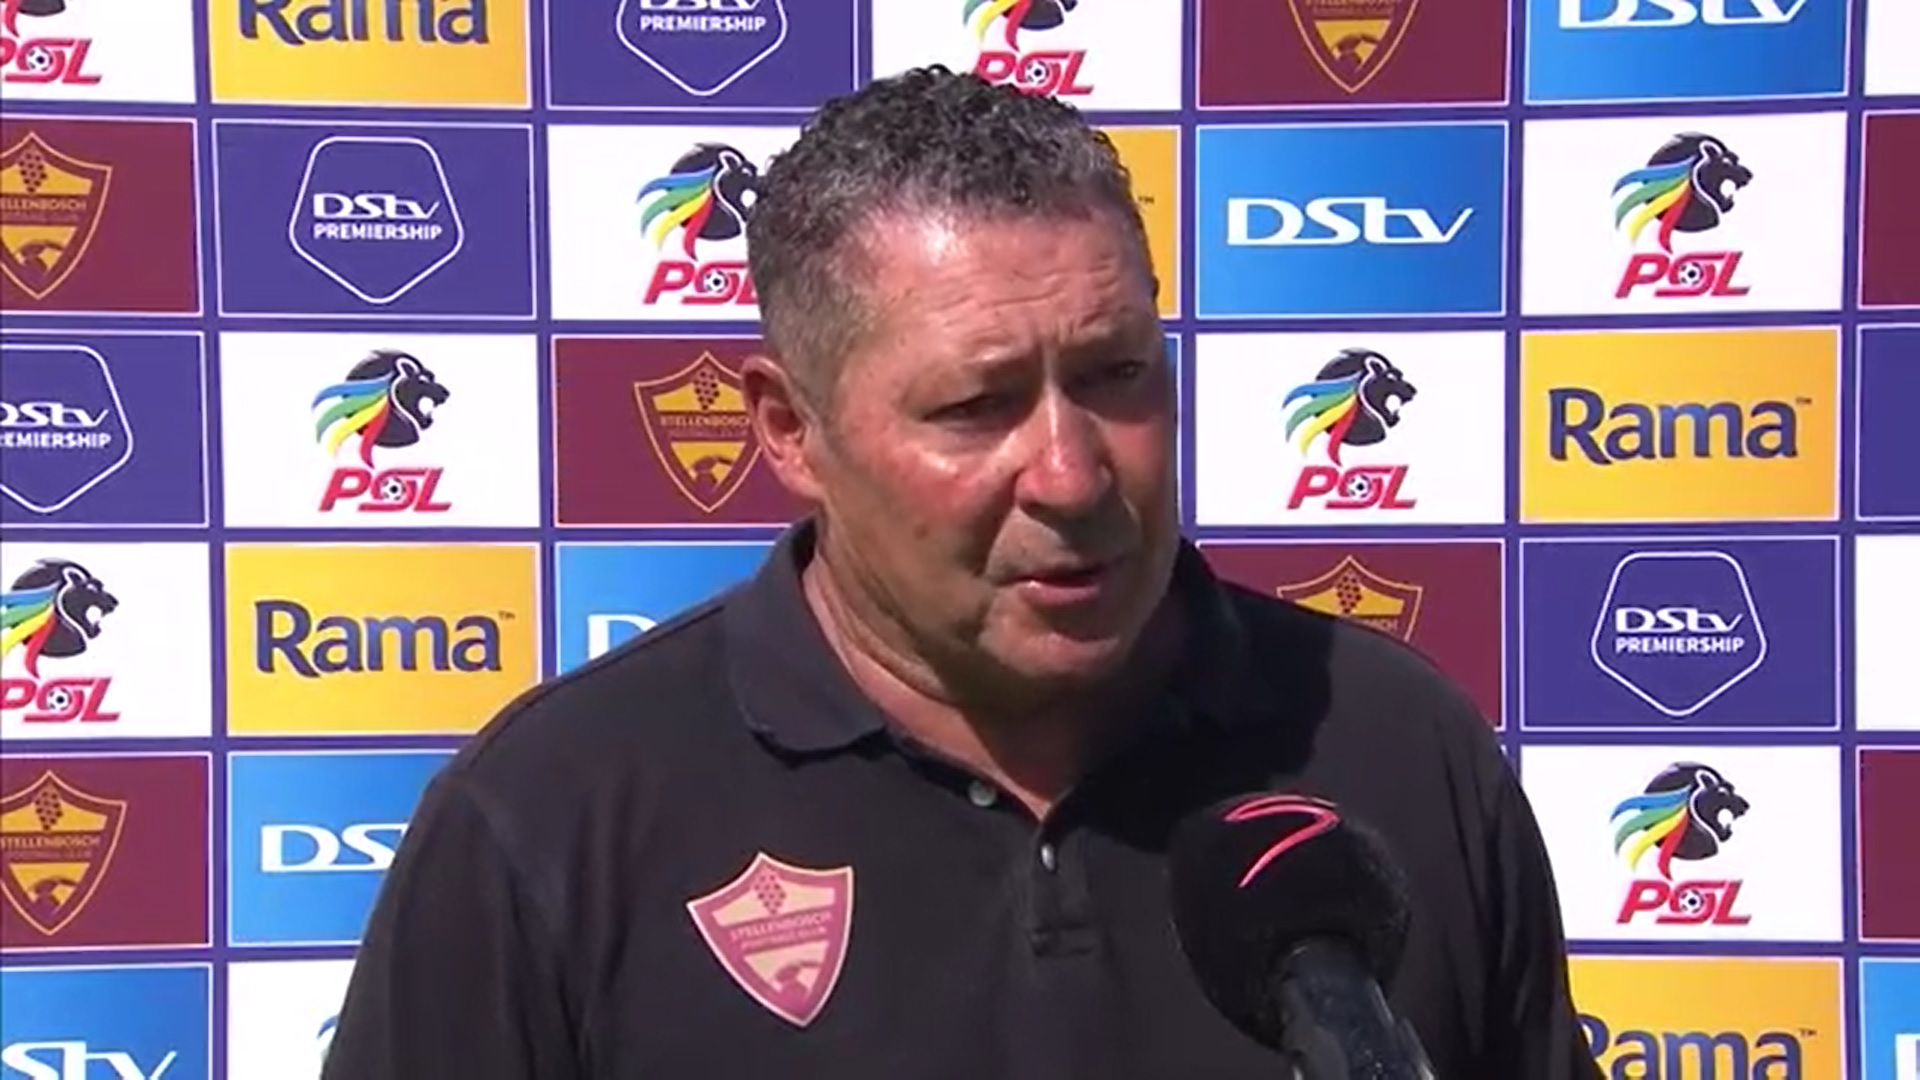 DStv Premiership | Stellenbosch FC v Mamelodi Sundowns | Post-match interview with Steve Barker